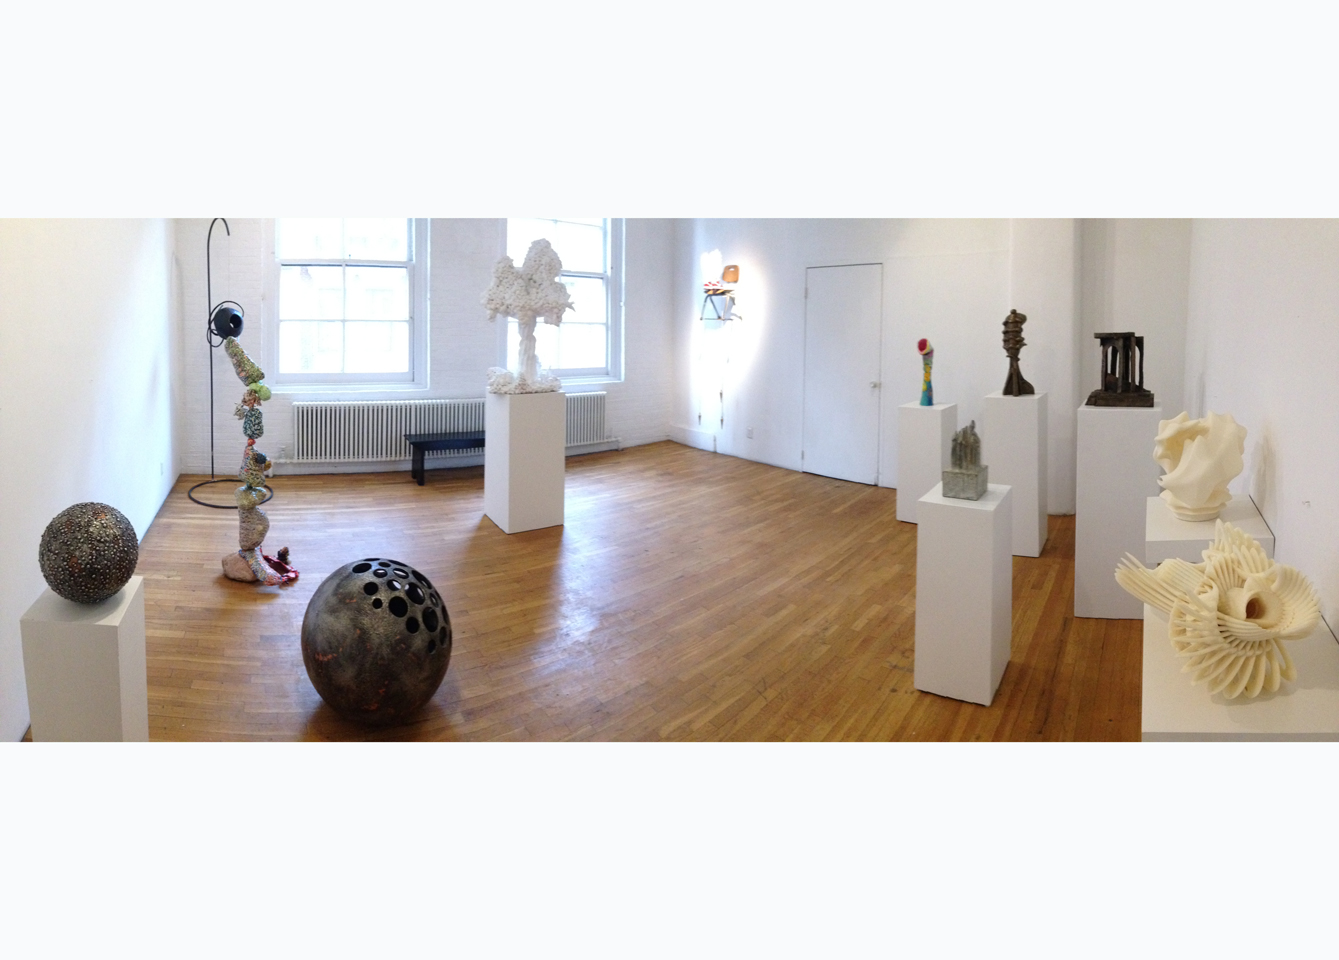 Caroline_Bergonzi_Currently-80_Sculptors-Guild_Sculptor_fine-art_New-york_04.jpg